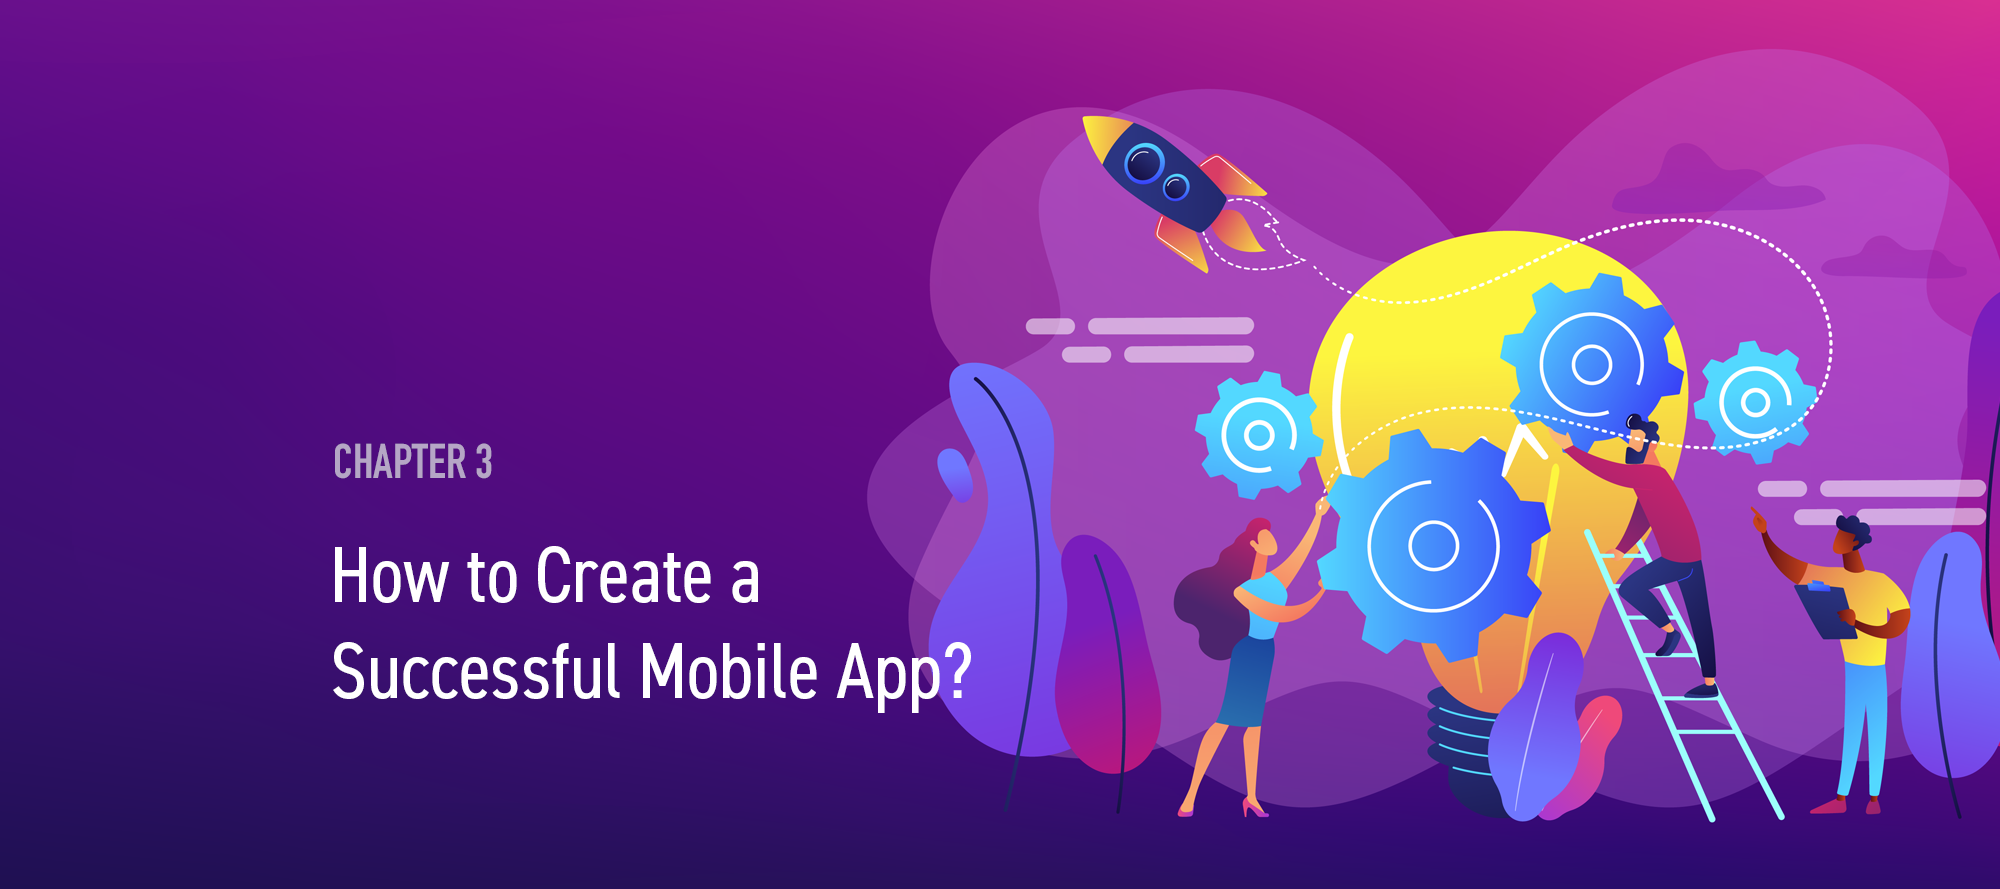 11 steps: How to Create a Successful Mobile App? | Chapter 3